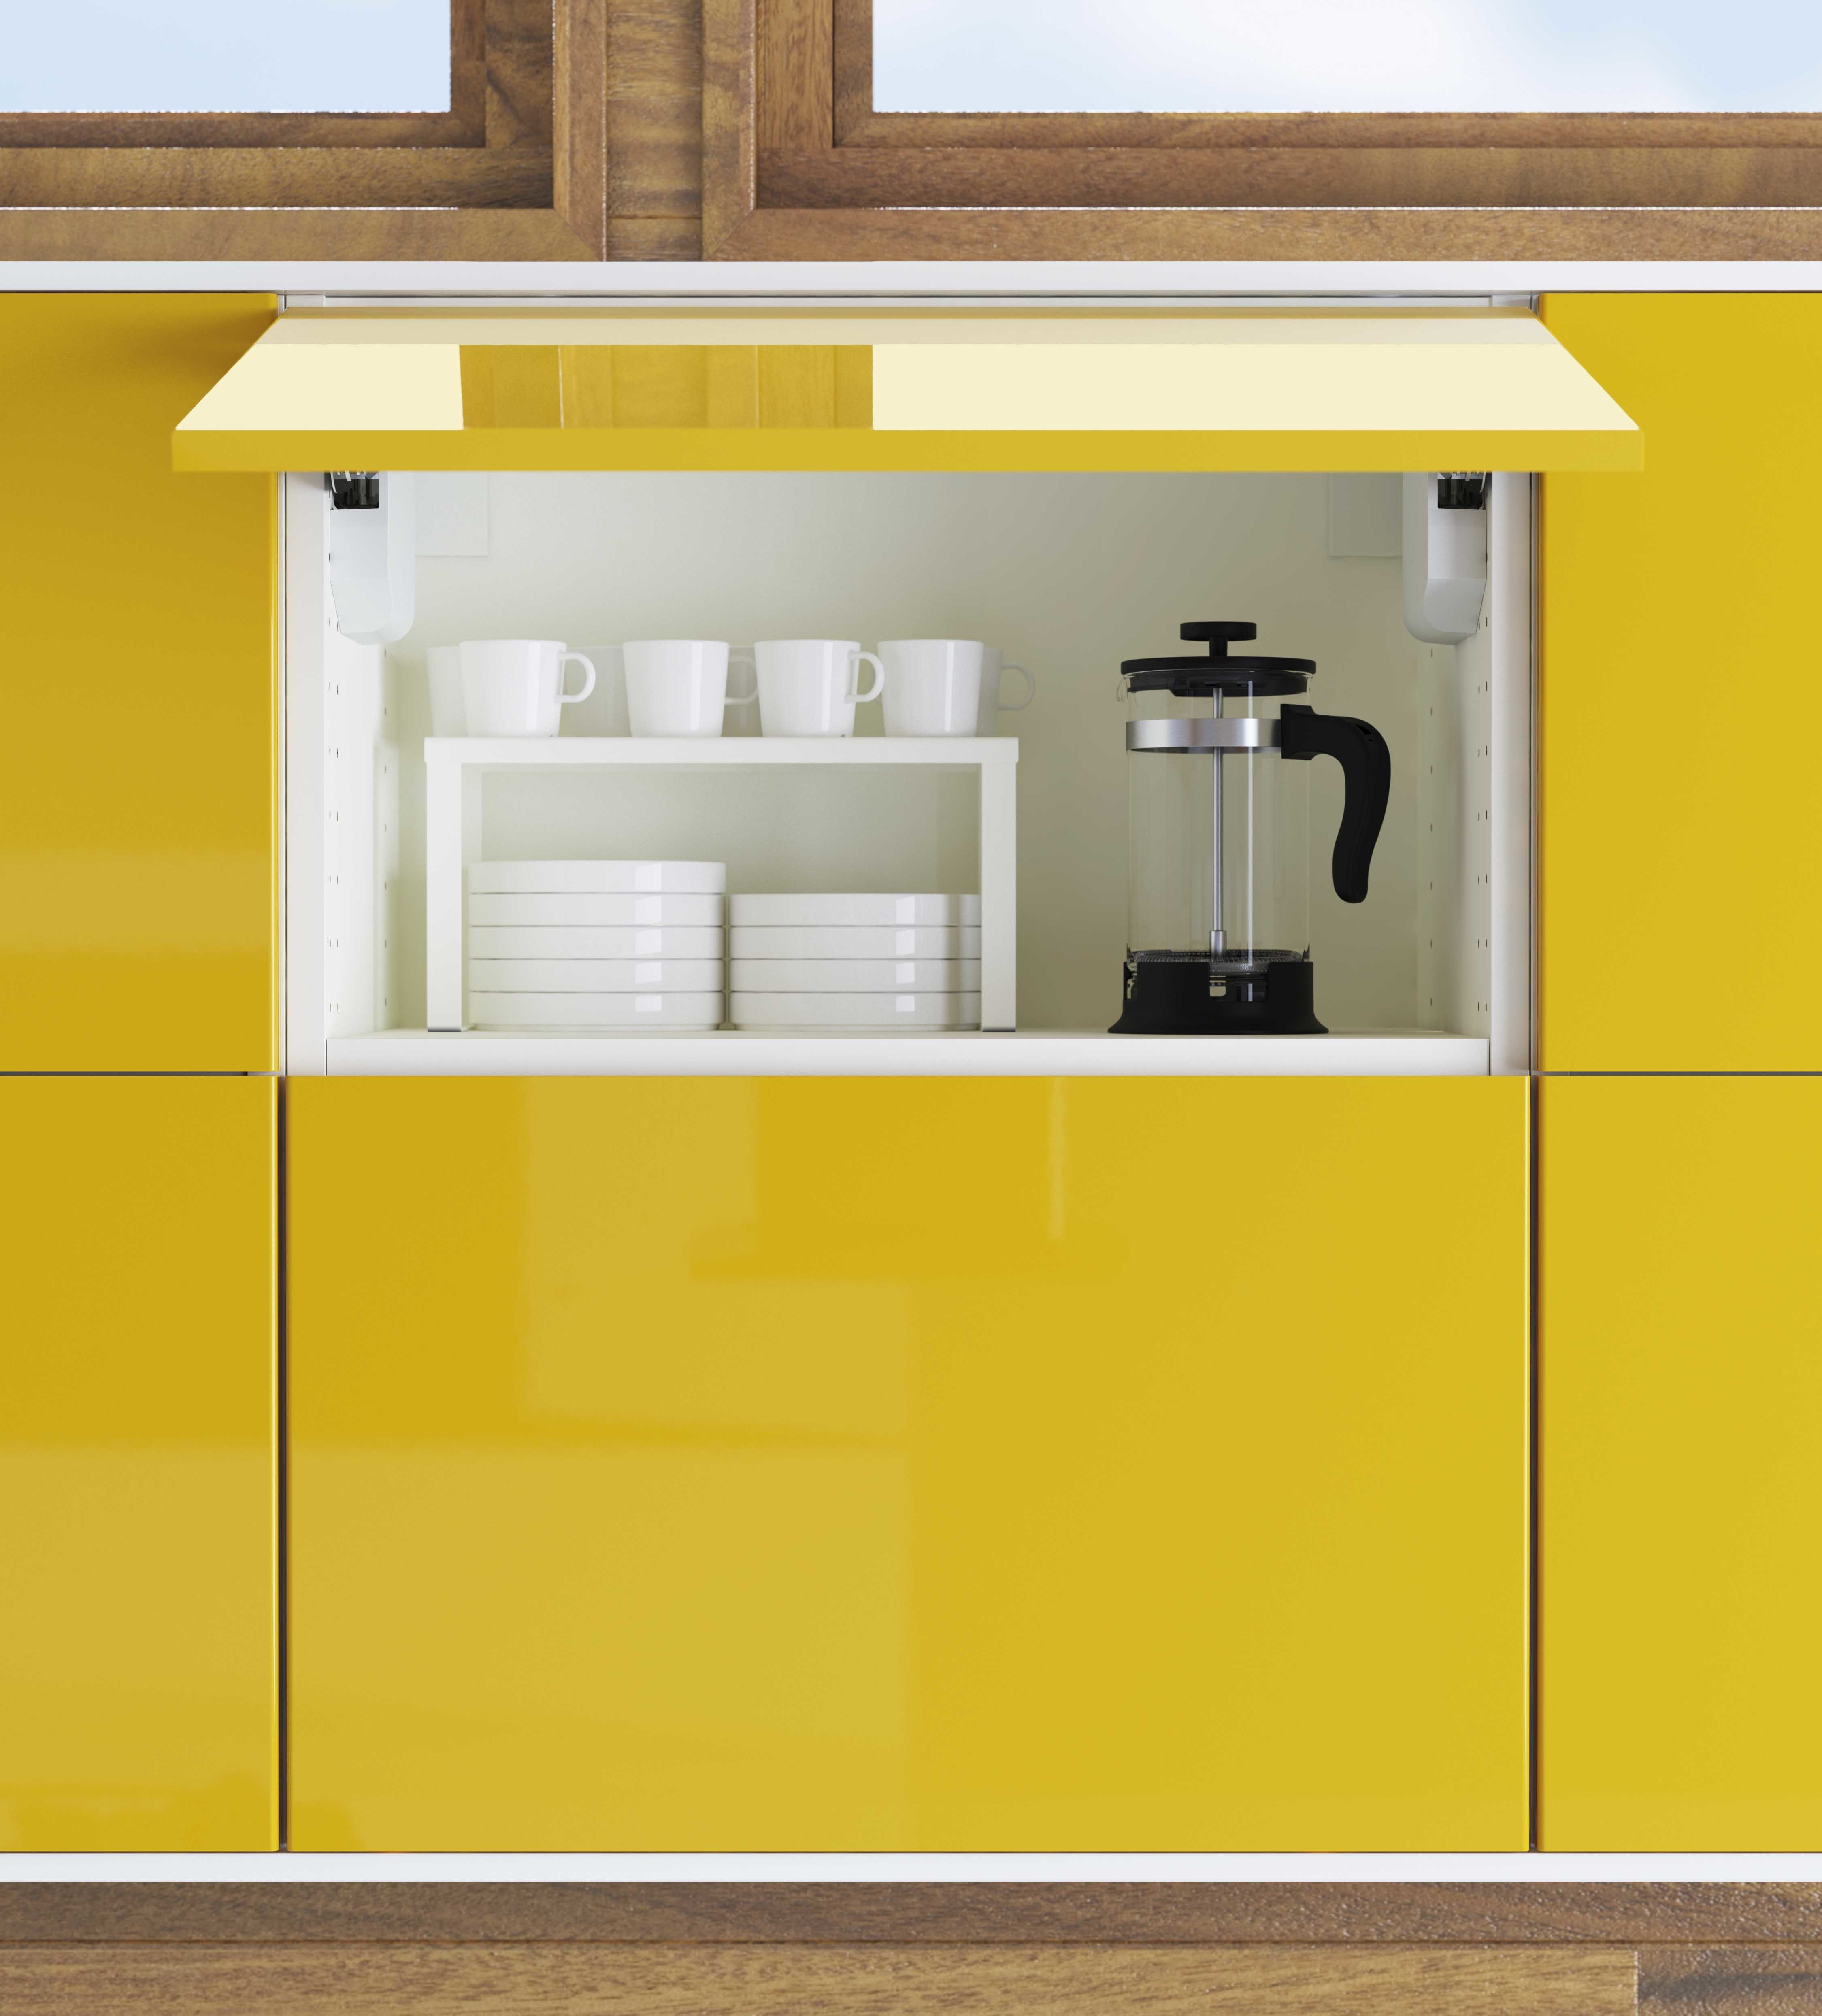 Overhead Cabinets Now Can Be Easily Swung Open For Ease Of Access. The  Kitchens Are